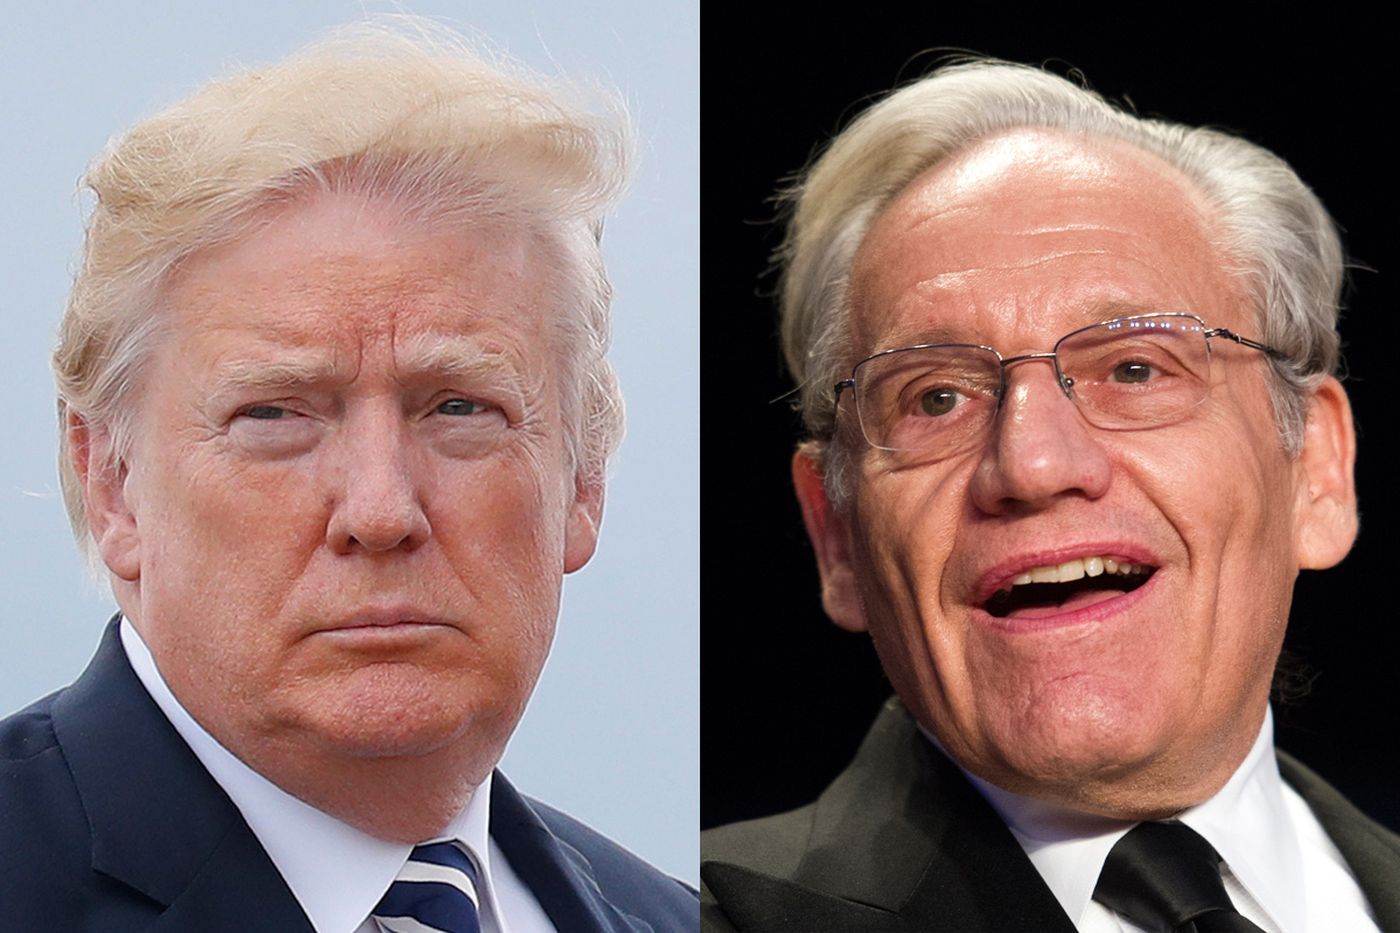 Trump 'wanted Assad assassinated': key claims in Bob Woodward's book